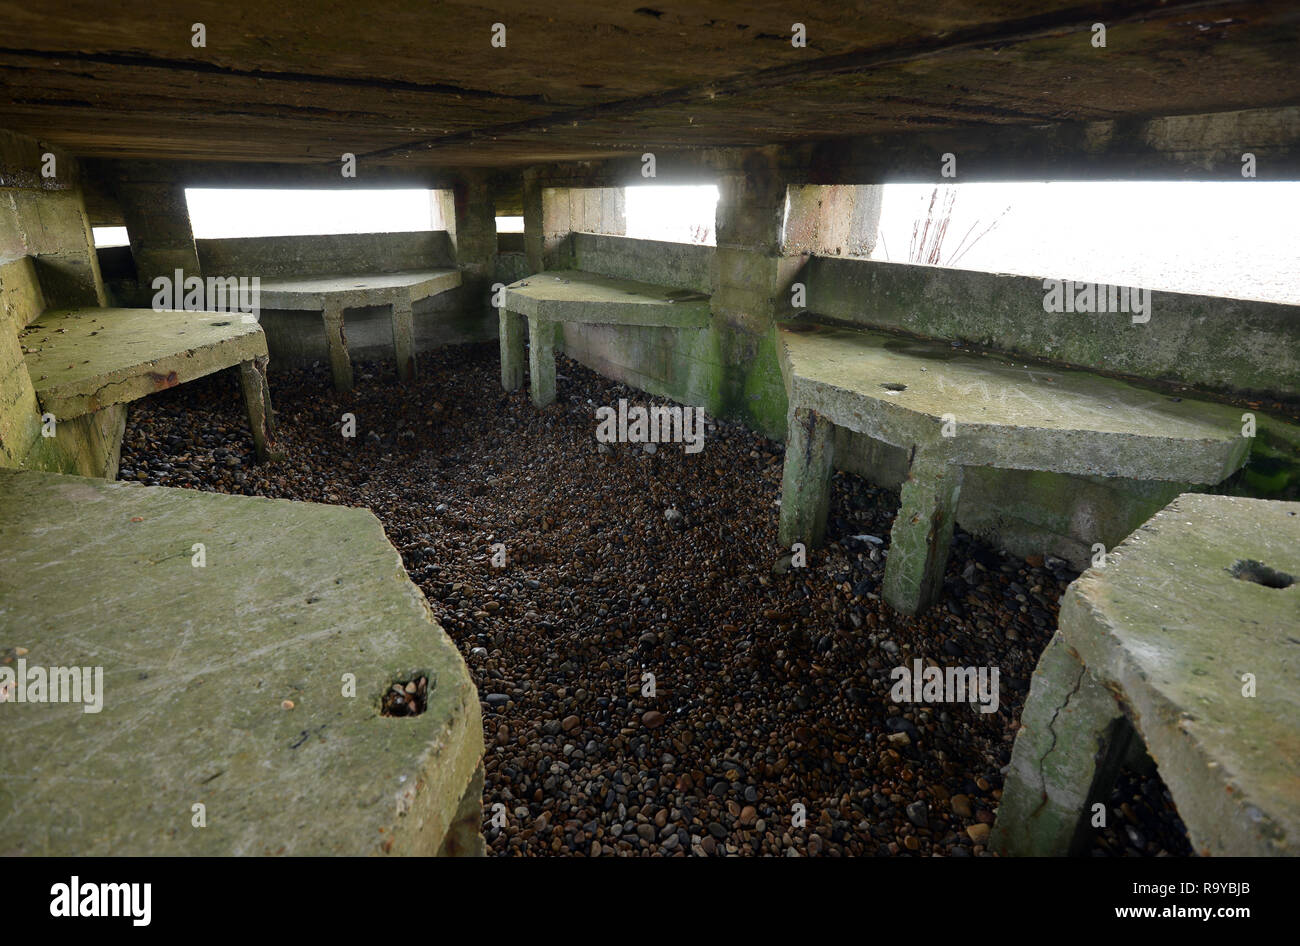 La DEUXIÈME GUERRE MONDIALE, casemate de défensive plage de seigle, East Sussex, UK Photo Stock